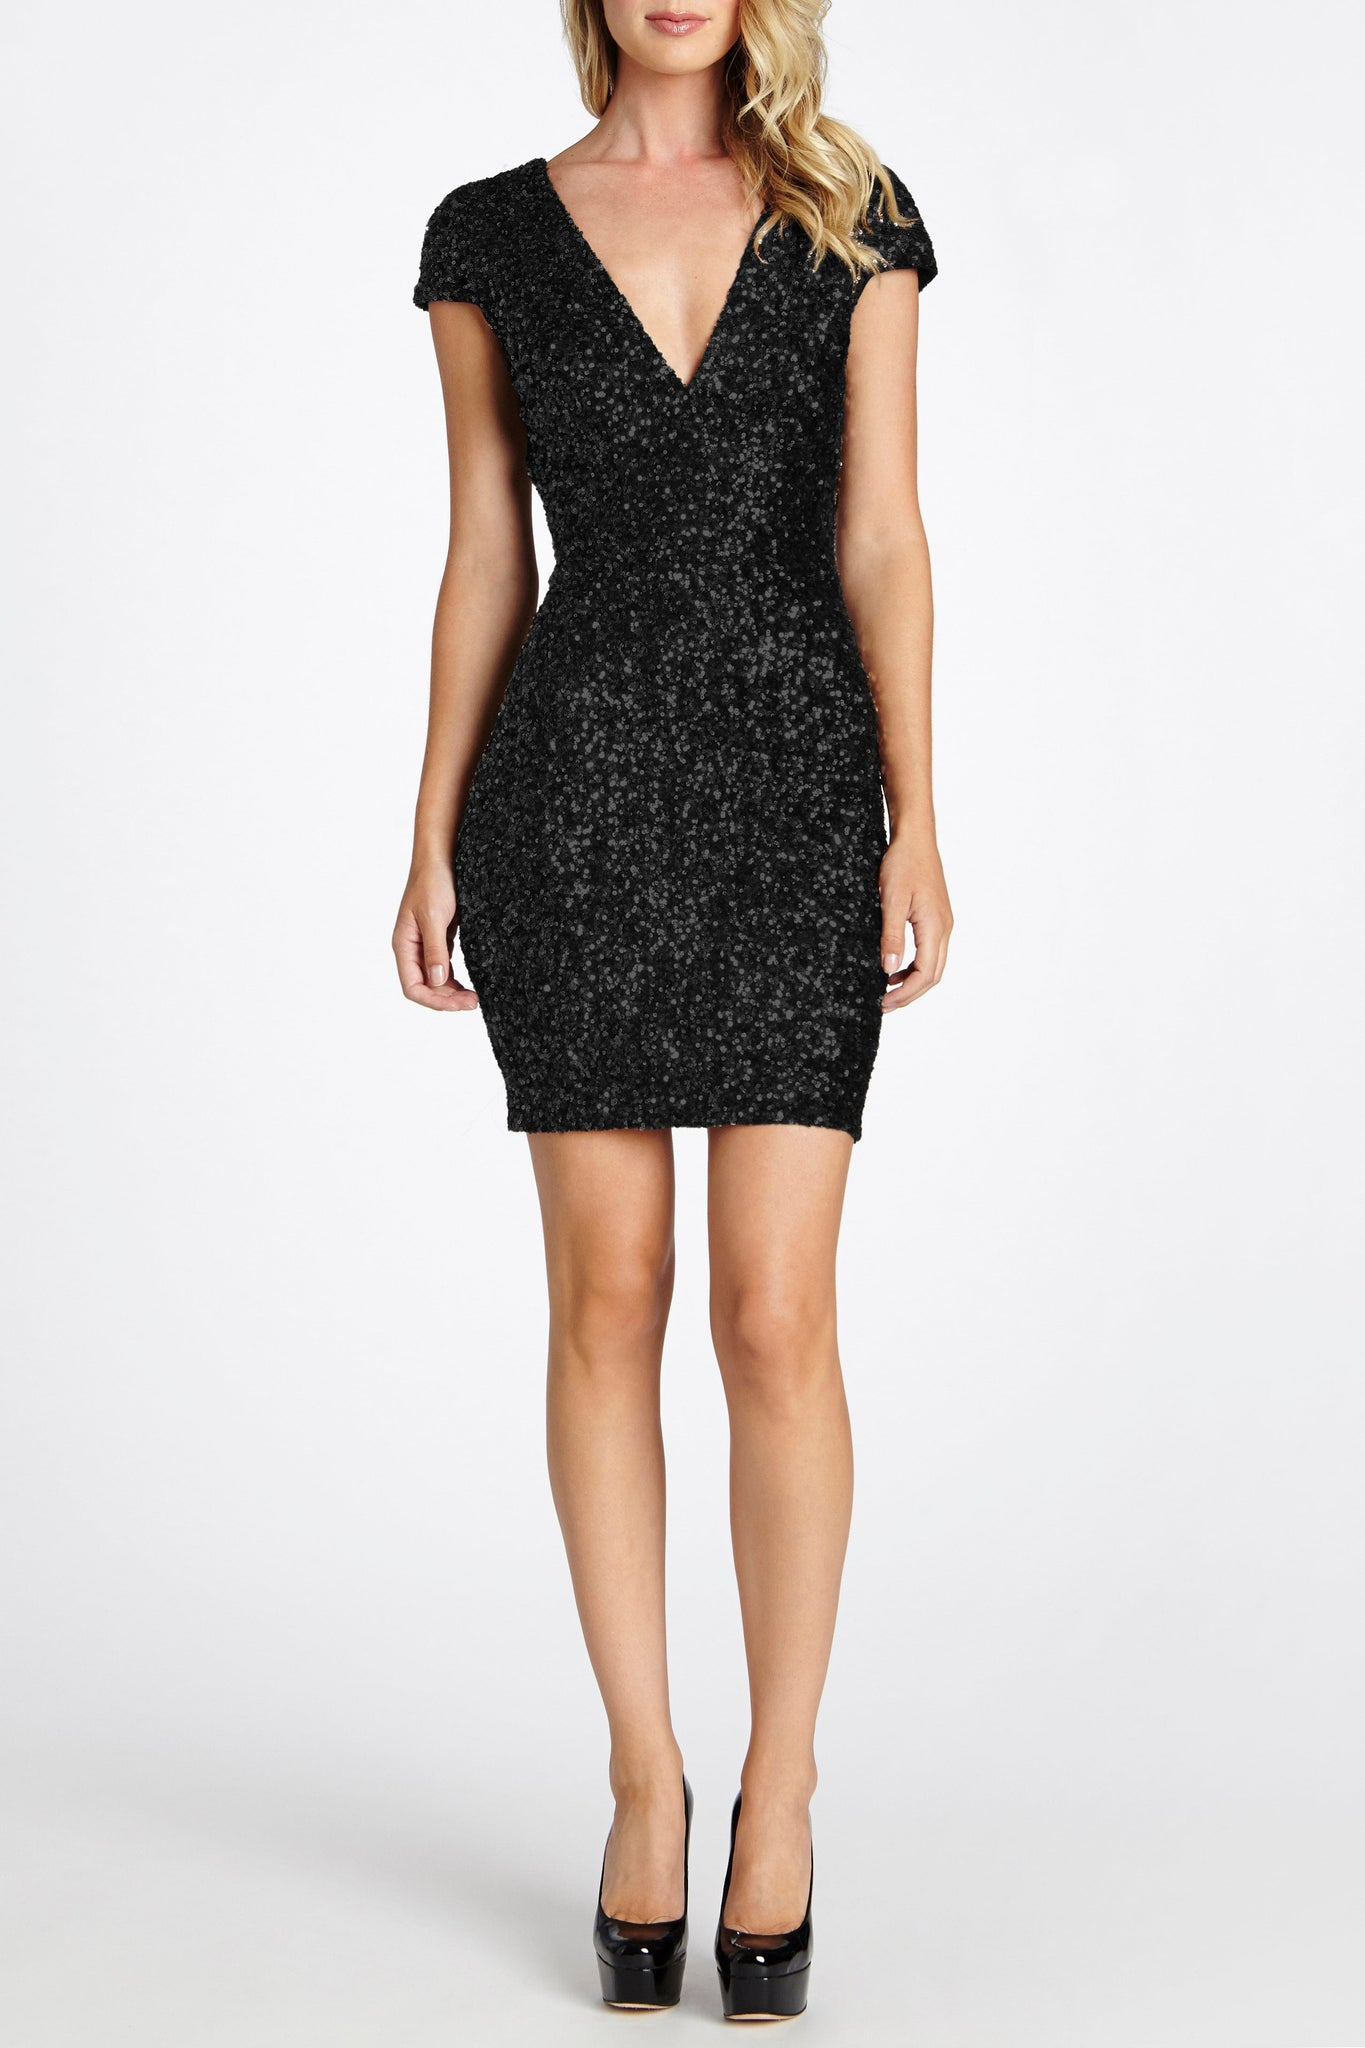 Zoe Cap Sleeve Plunging Body Con Mini Sequin Dress